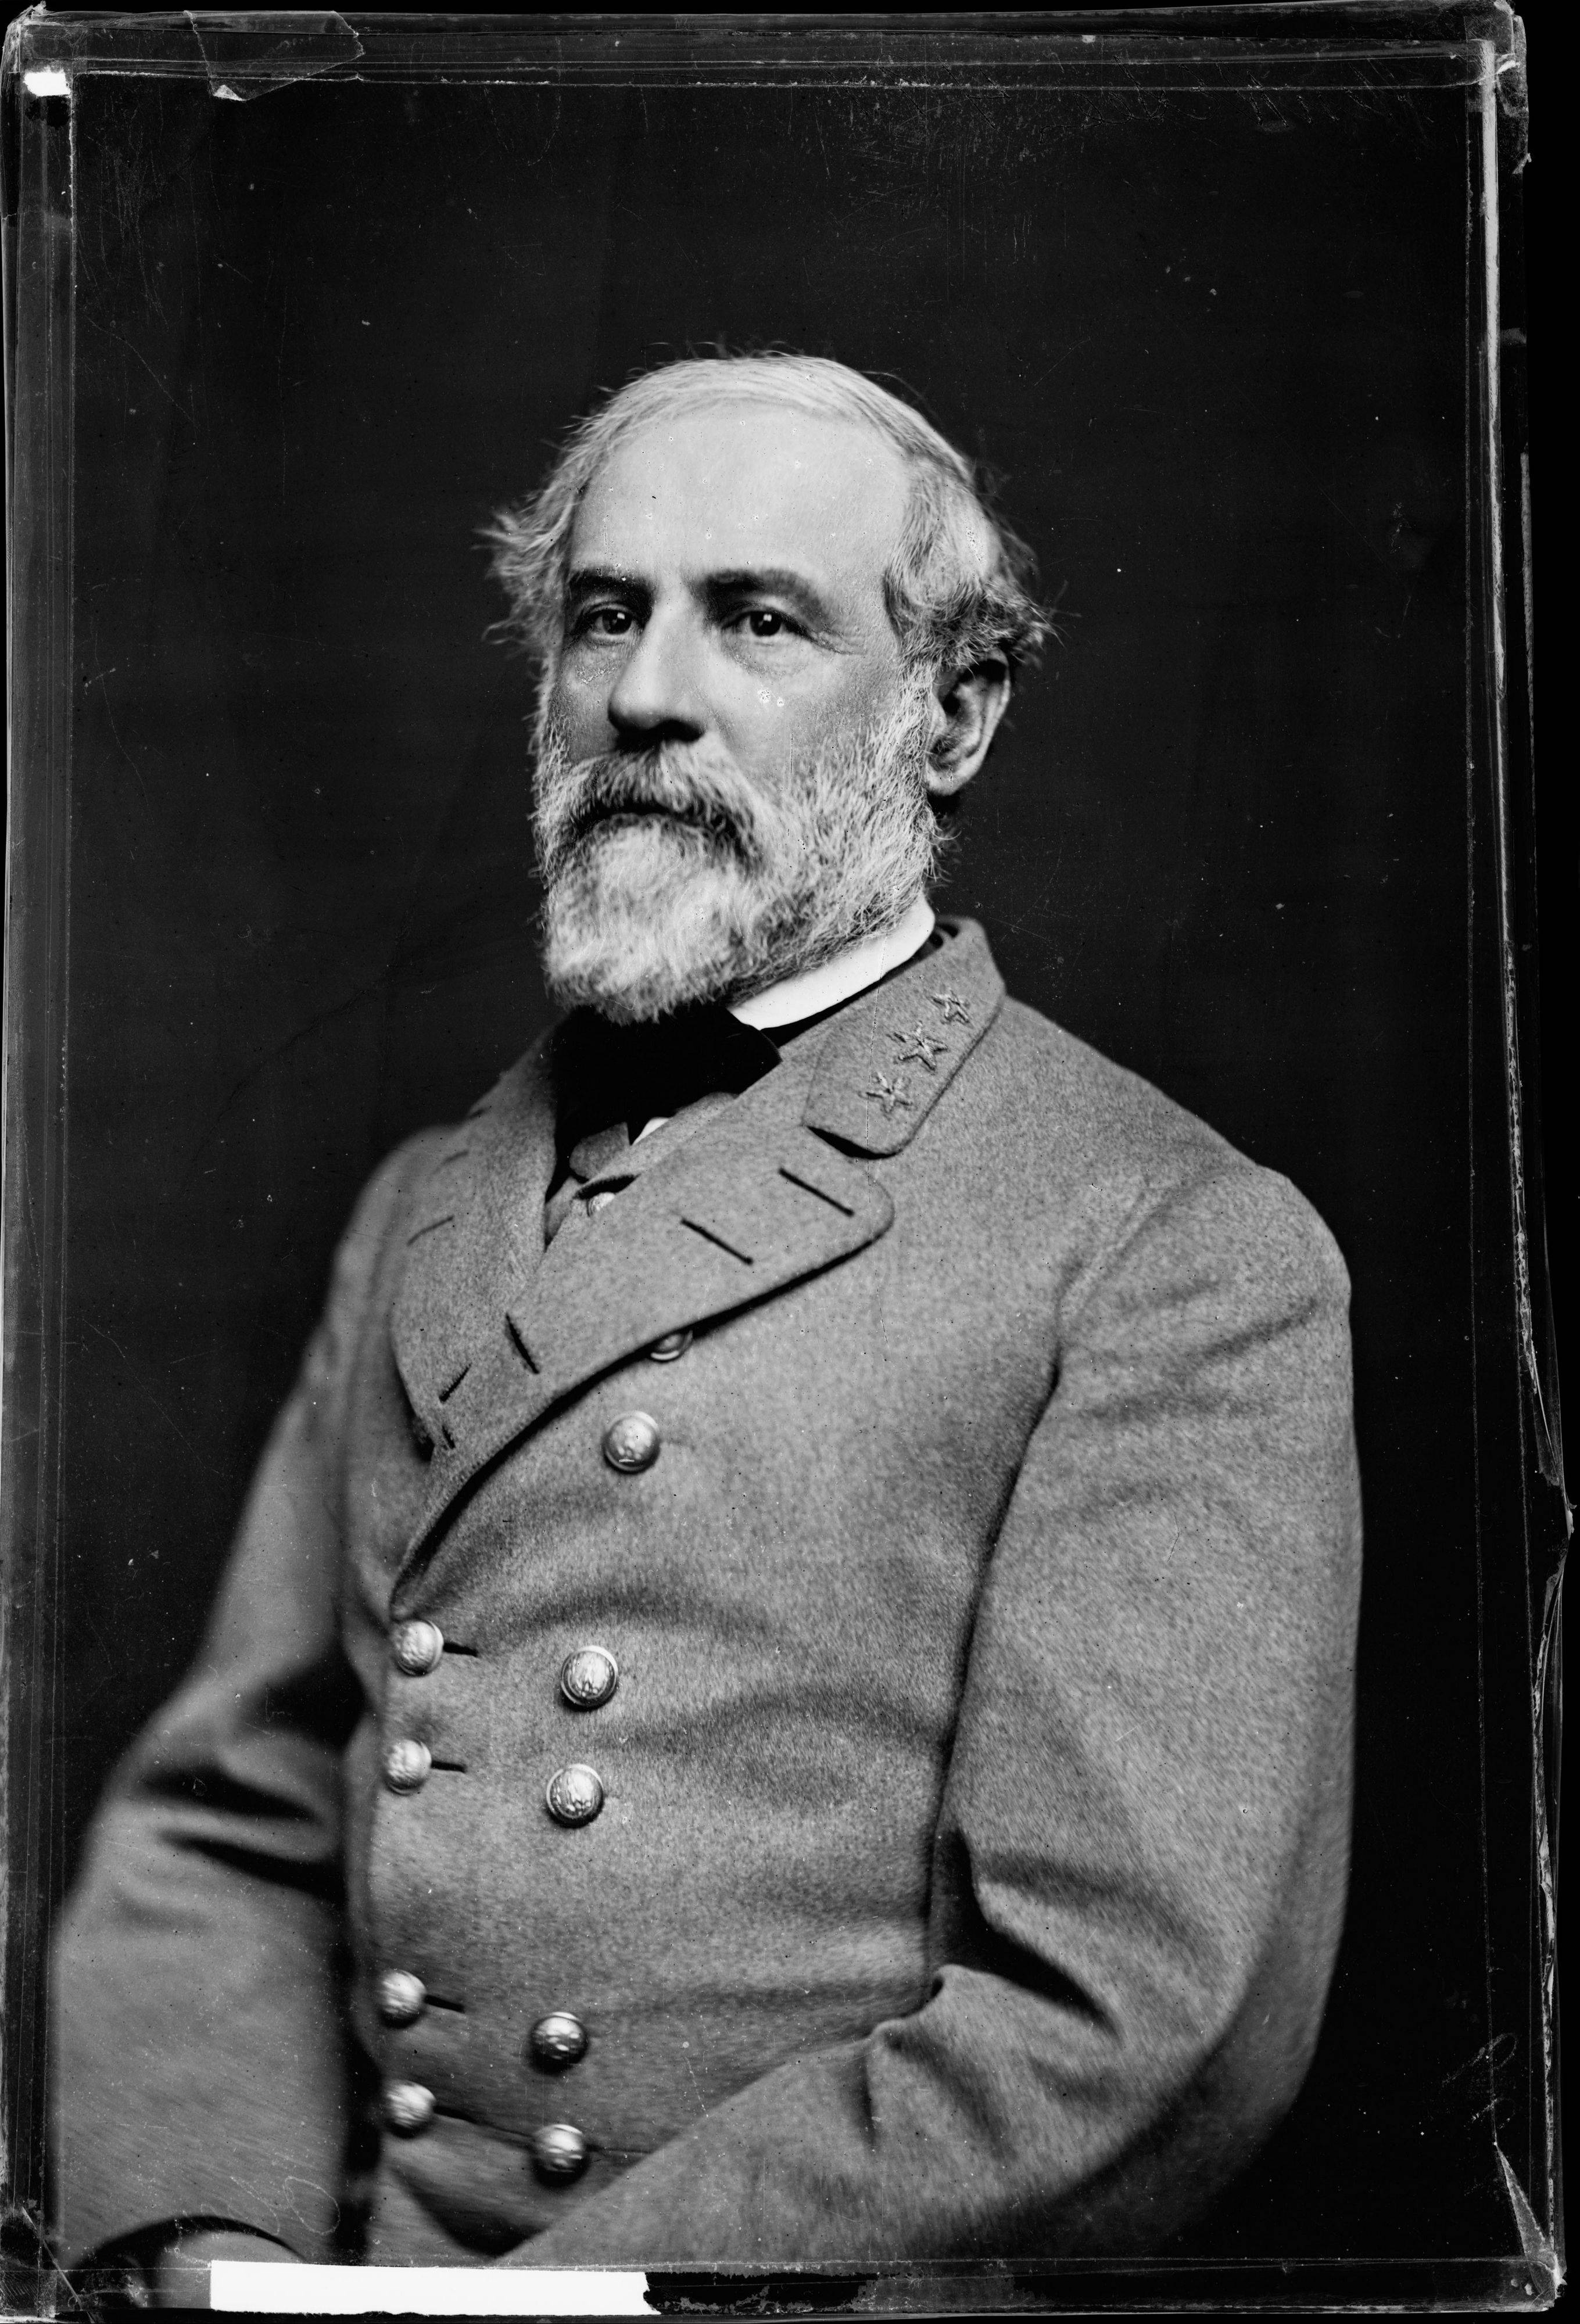 This 1864 photo made available by the Library of Congress shows Confederate Army Gen. Robert E. Lee. When dawn broke along Antietam Creek on Sept. 17, 1862, cannon volleys launched a Civil War battle that would leave 23,000 casualties on the single bloodiest day in U.S. history and mark a crucial pivot point in the war.